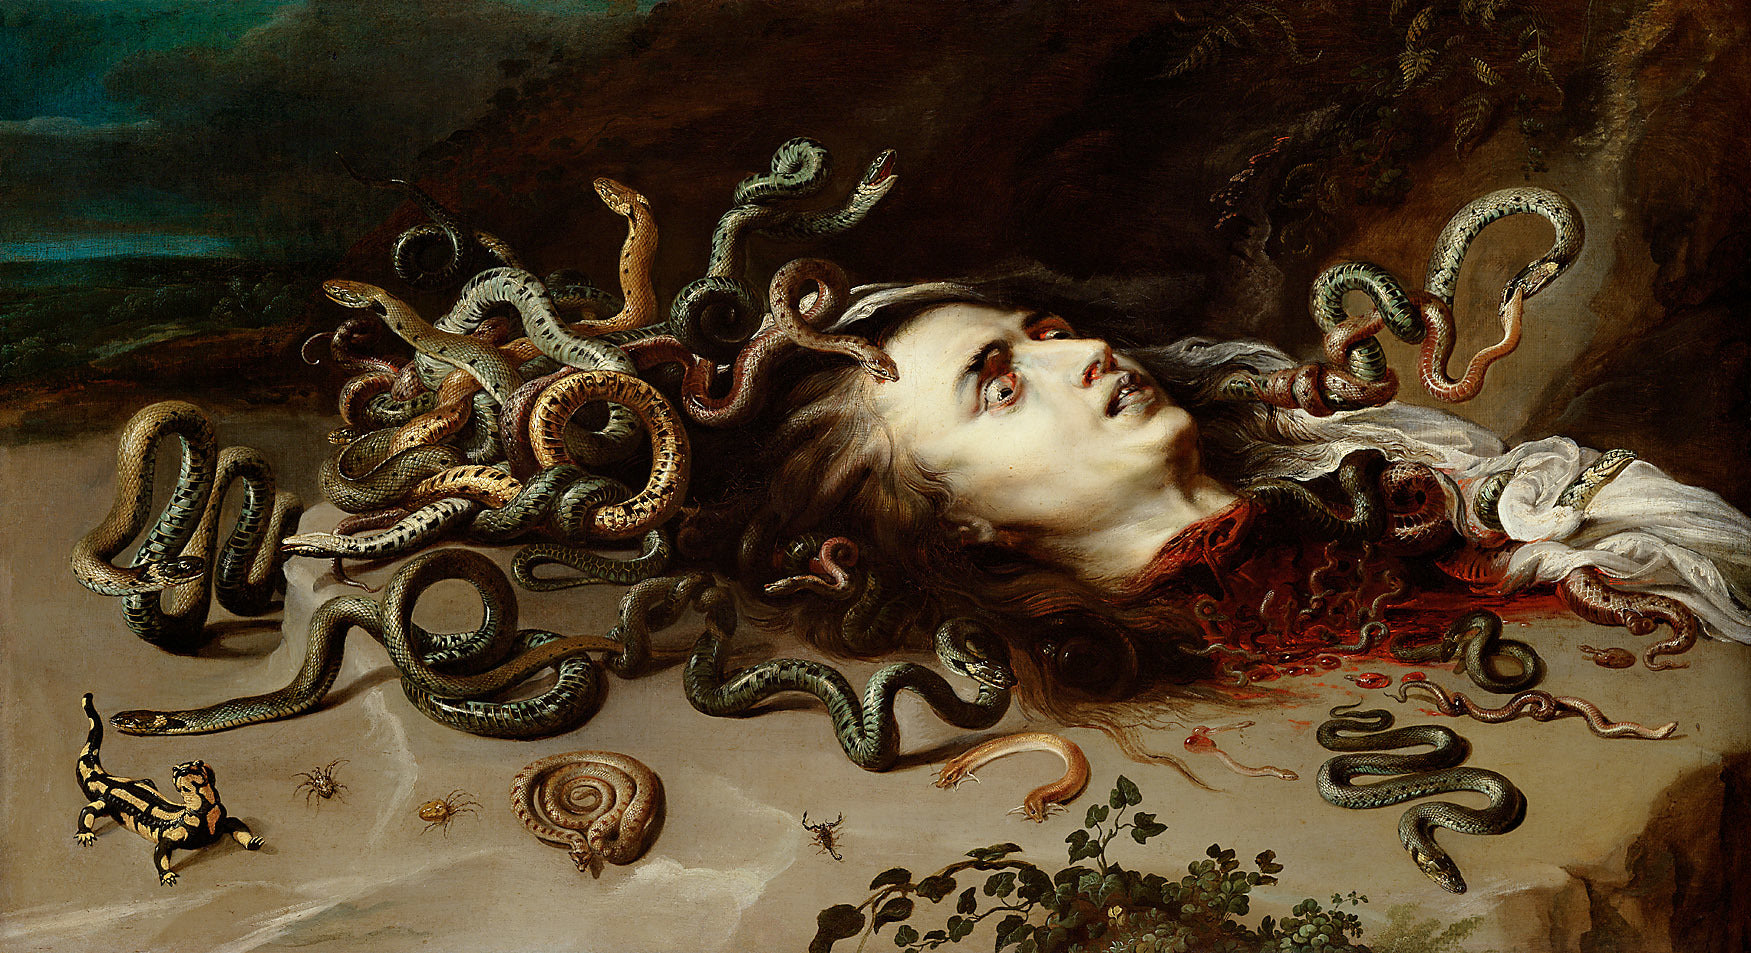 Head of Medusa by Peter Paul Rubens Reproduction Oil Painting on Canvas